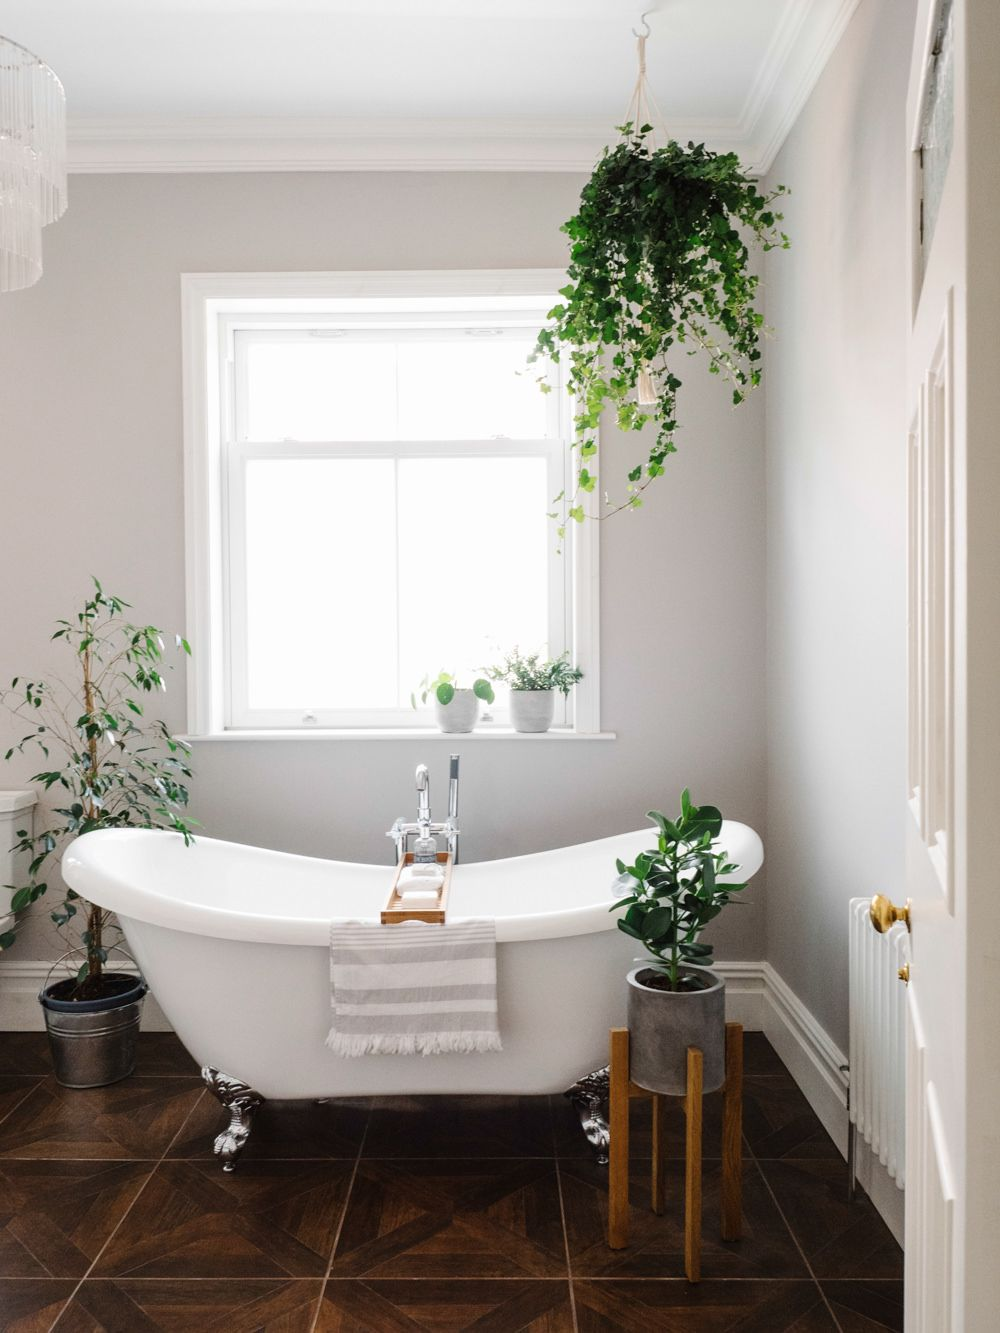 5 Things To Consider When Remodelling A Bathroom | Pinterest | White ...